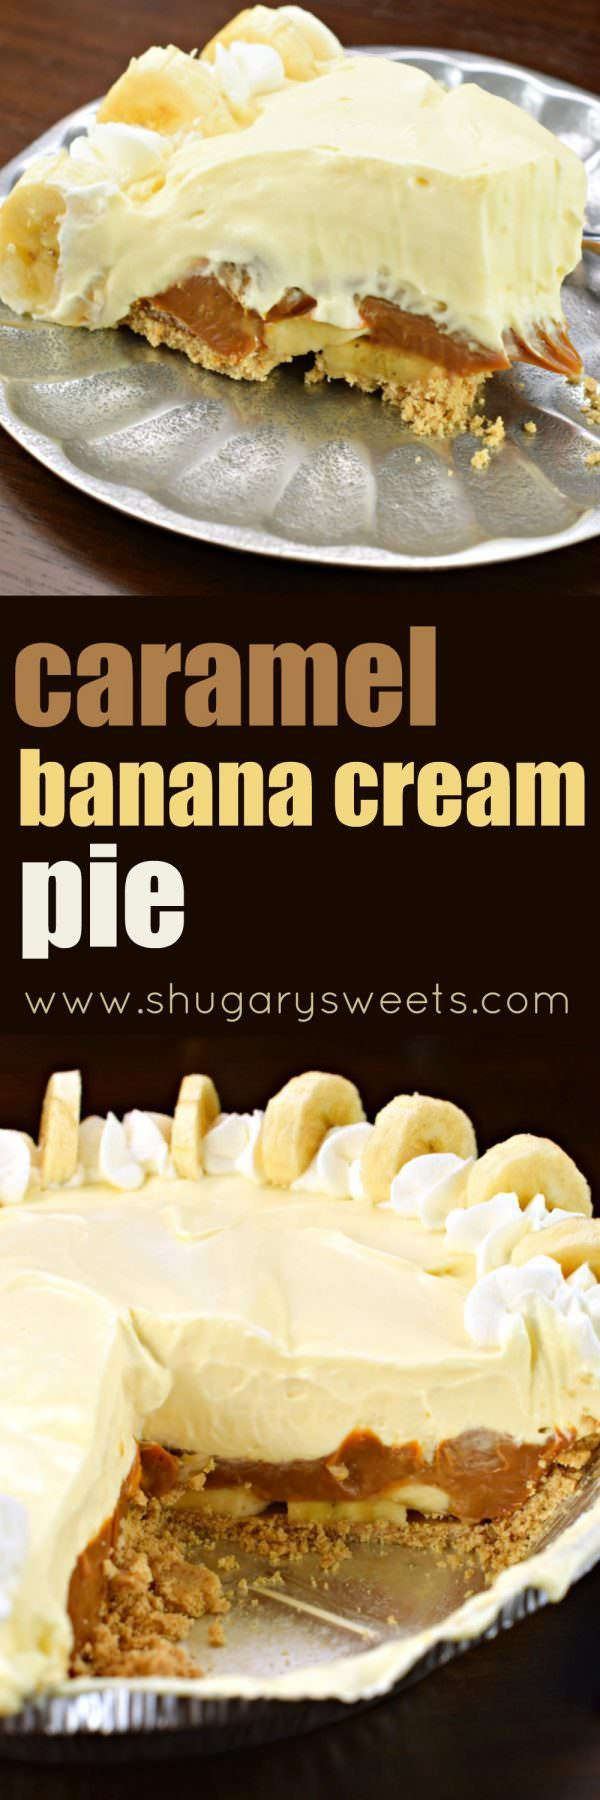 This Dulce de Leche Banana Cream Pie recipe has it all! Graham Cracker crust topped with dulce de leche and bananas with a no bake banana cheesecake filling!